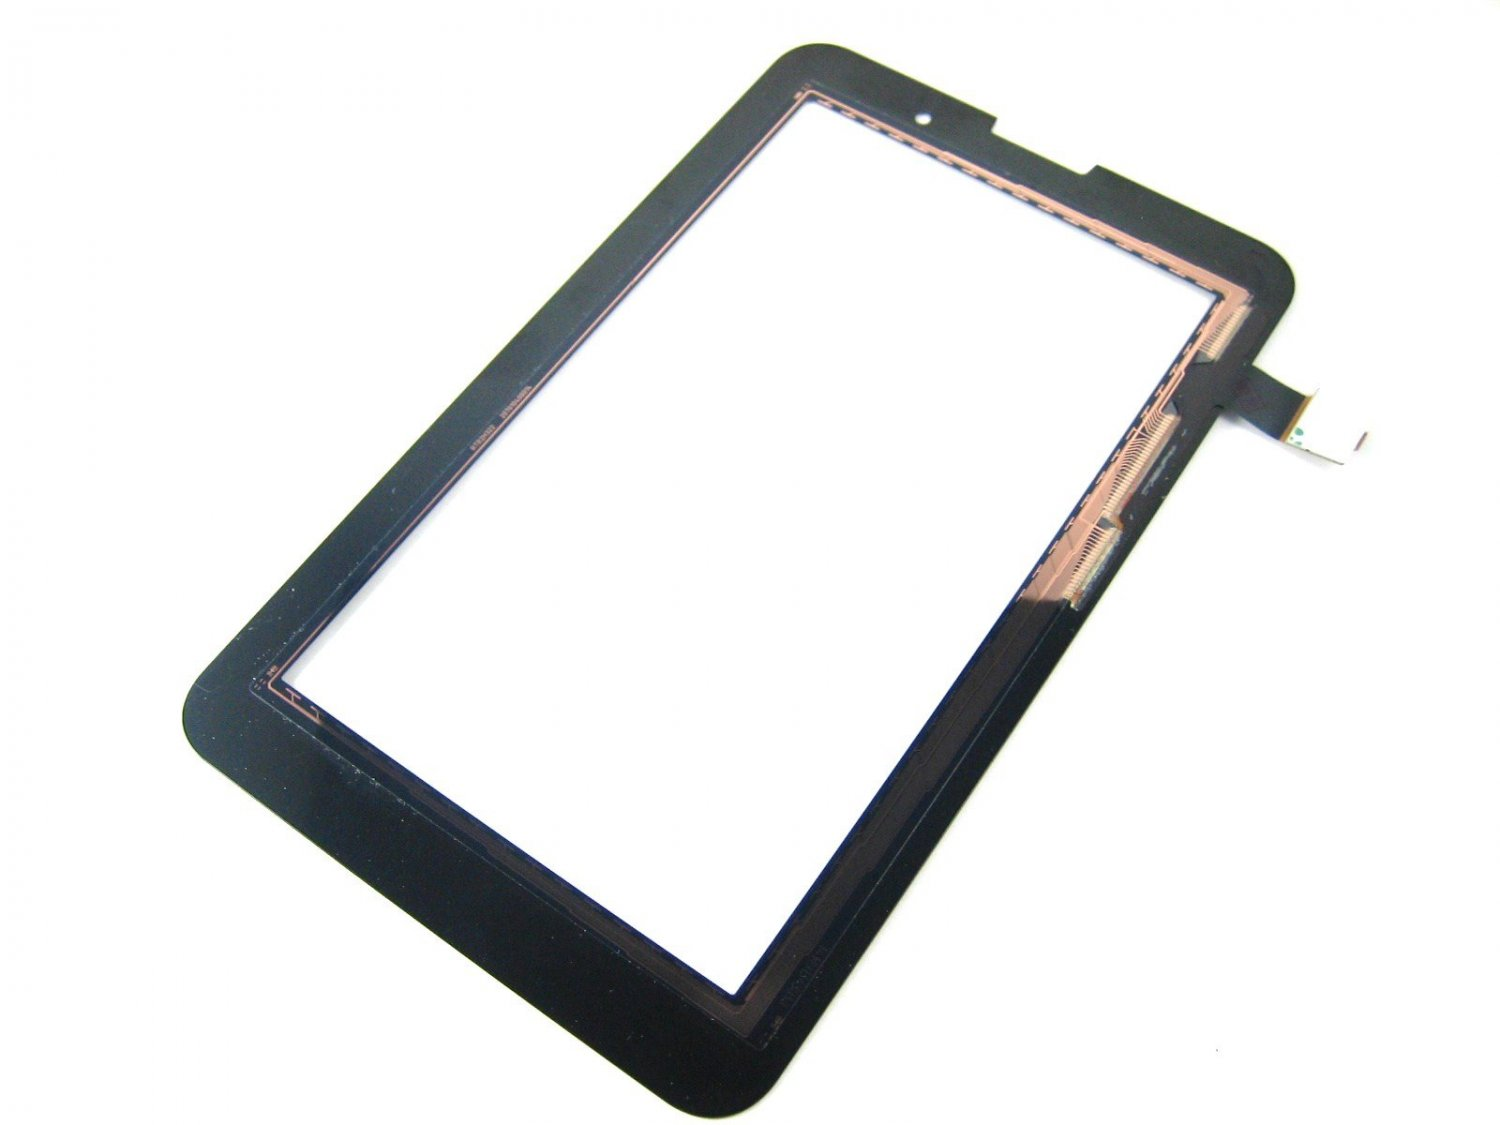 Touch Screen Digitizer Glass Repair Parts for Lenovo IdeaTab A3000 04283-MnTSA3000nnnnn